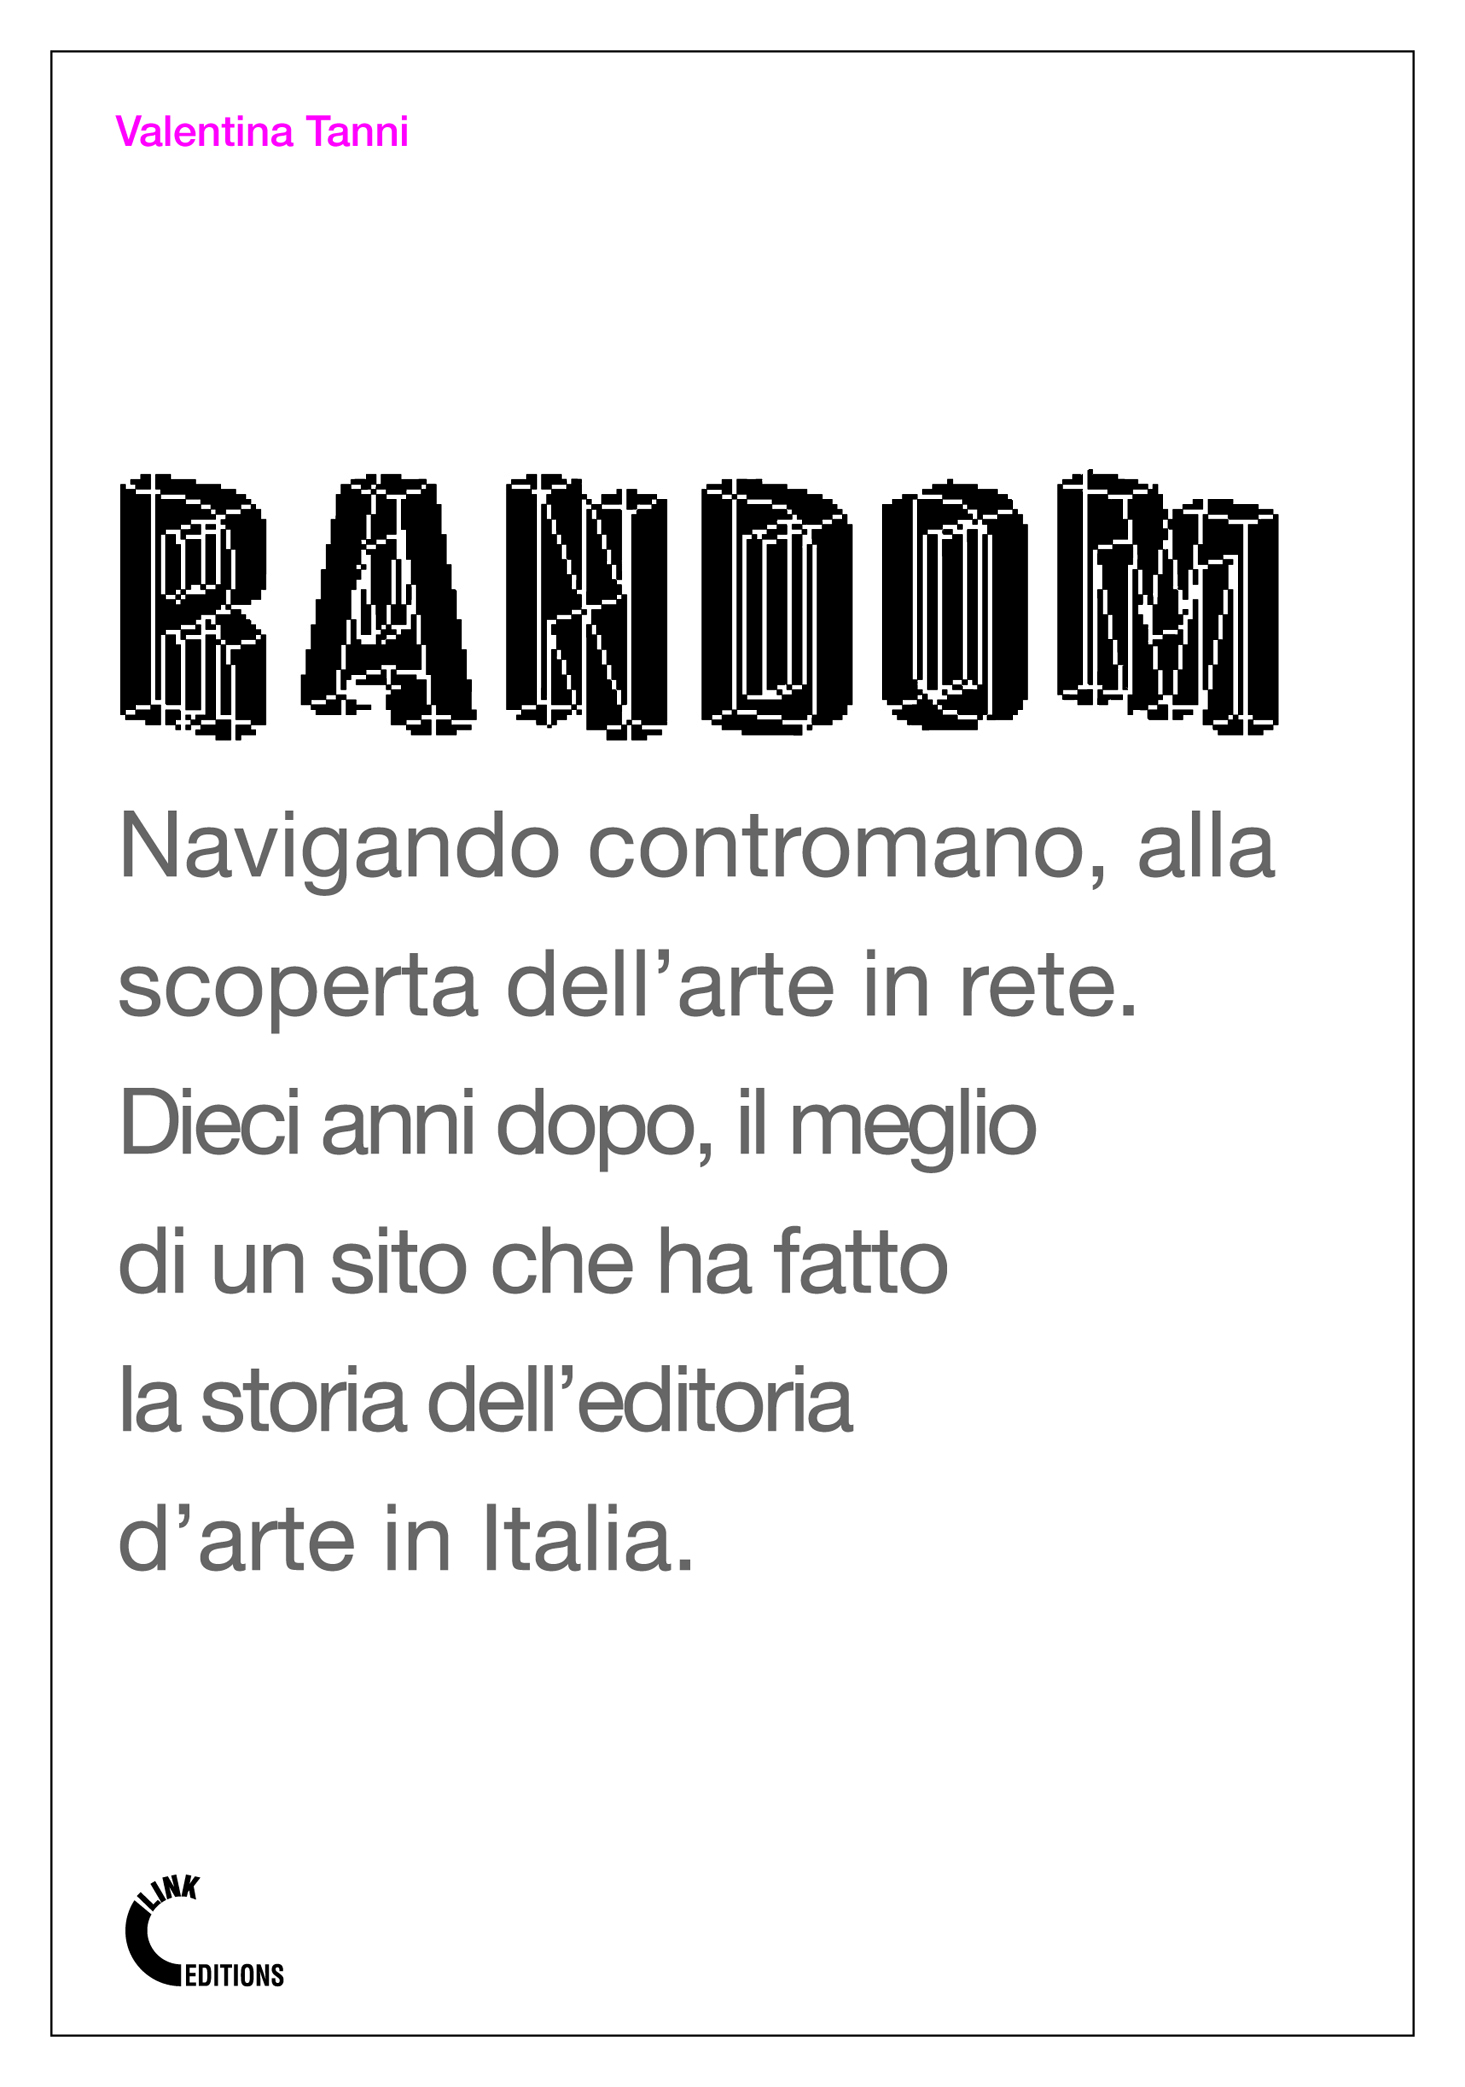 Random Magazine - New Media Art / E-culture: www.random-magazine.net